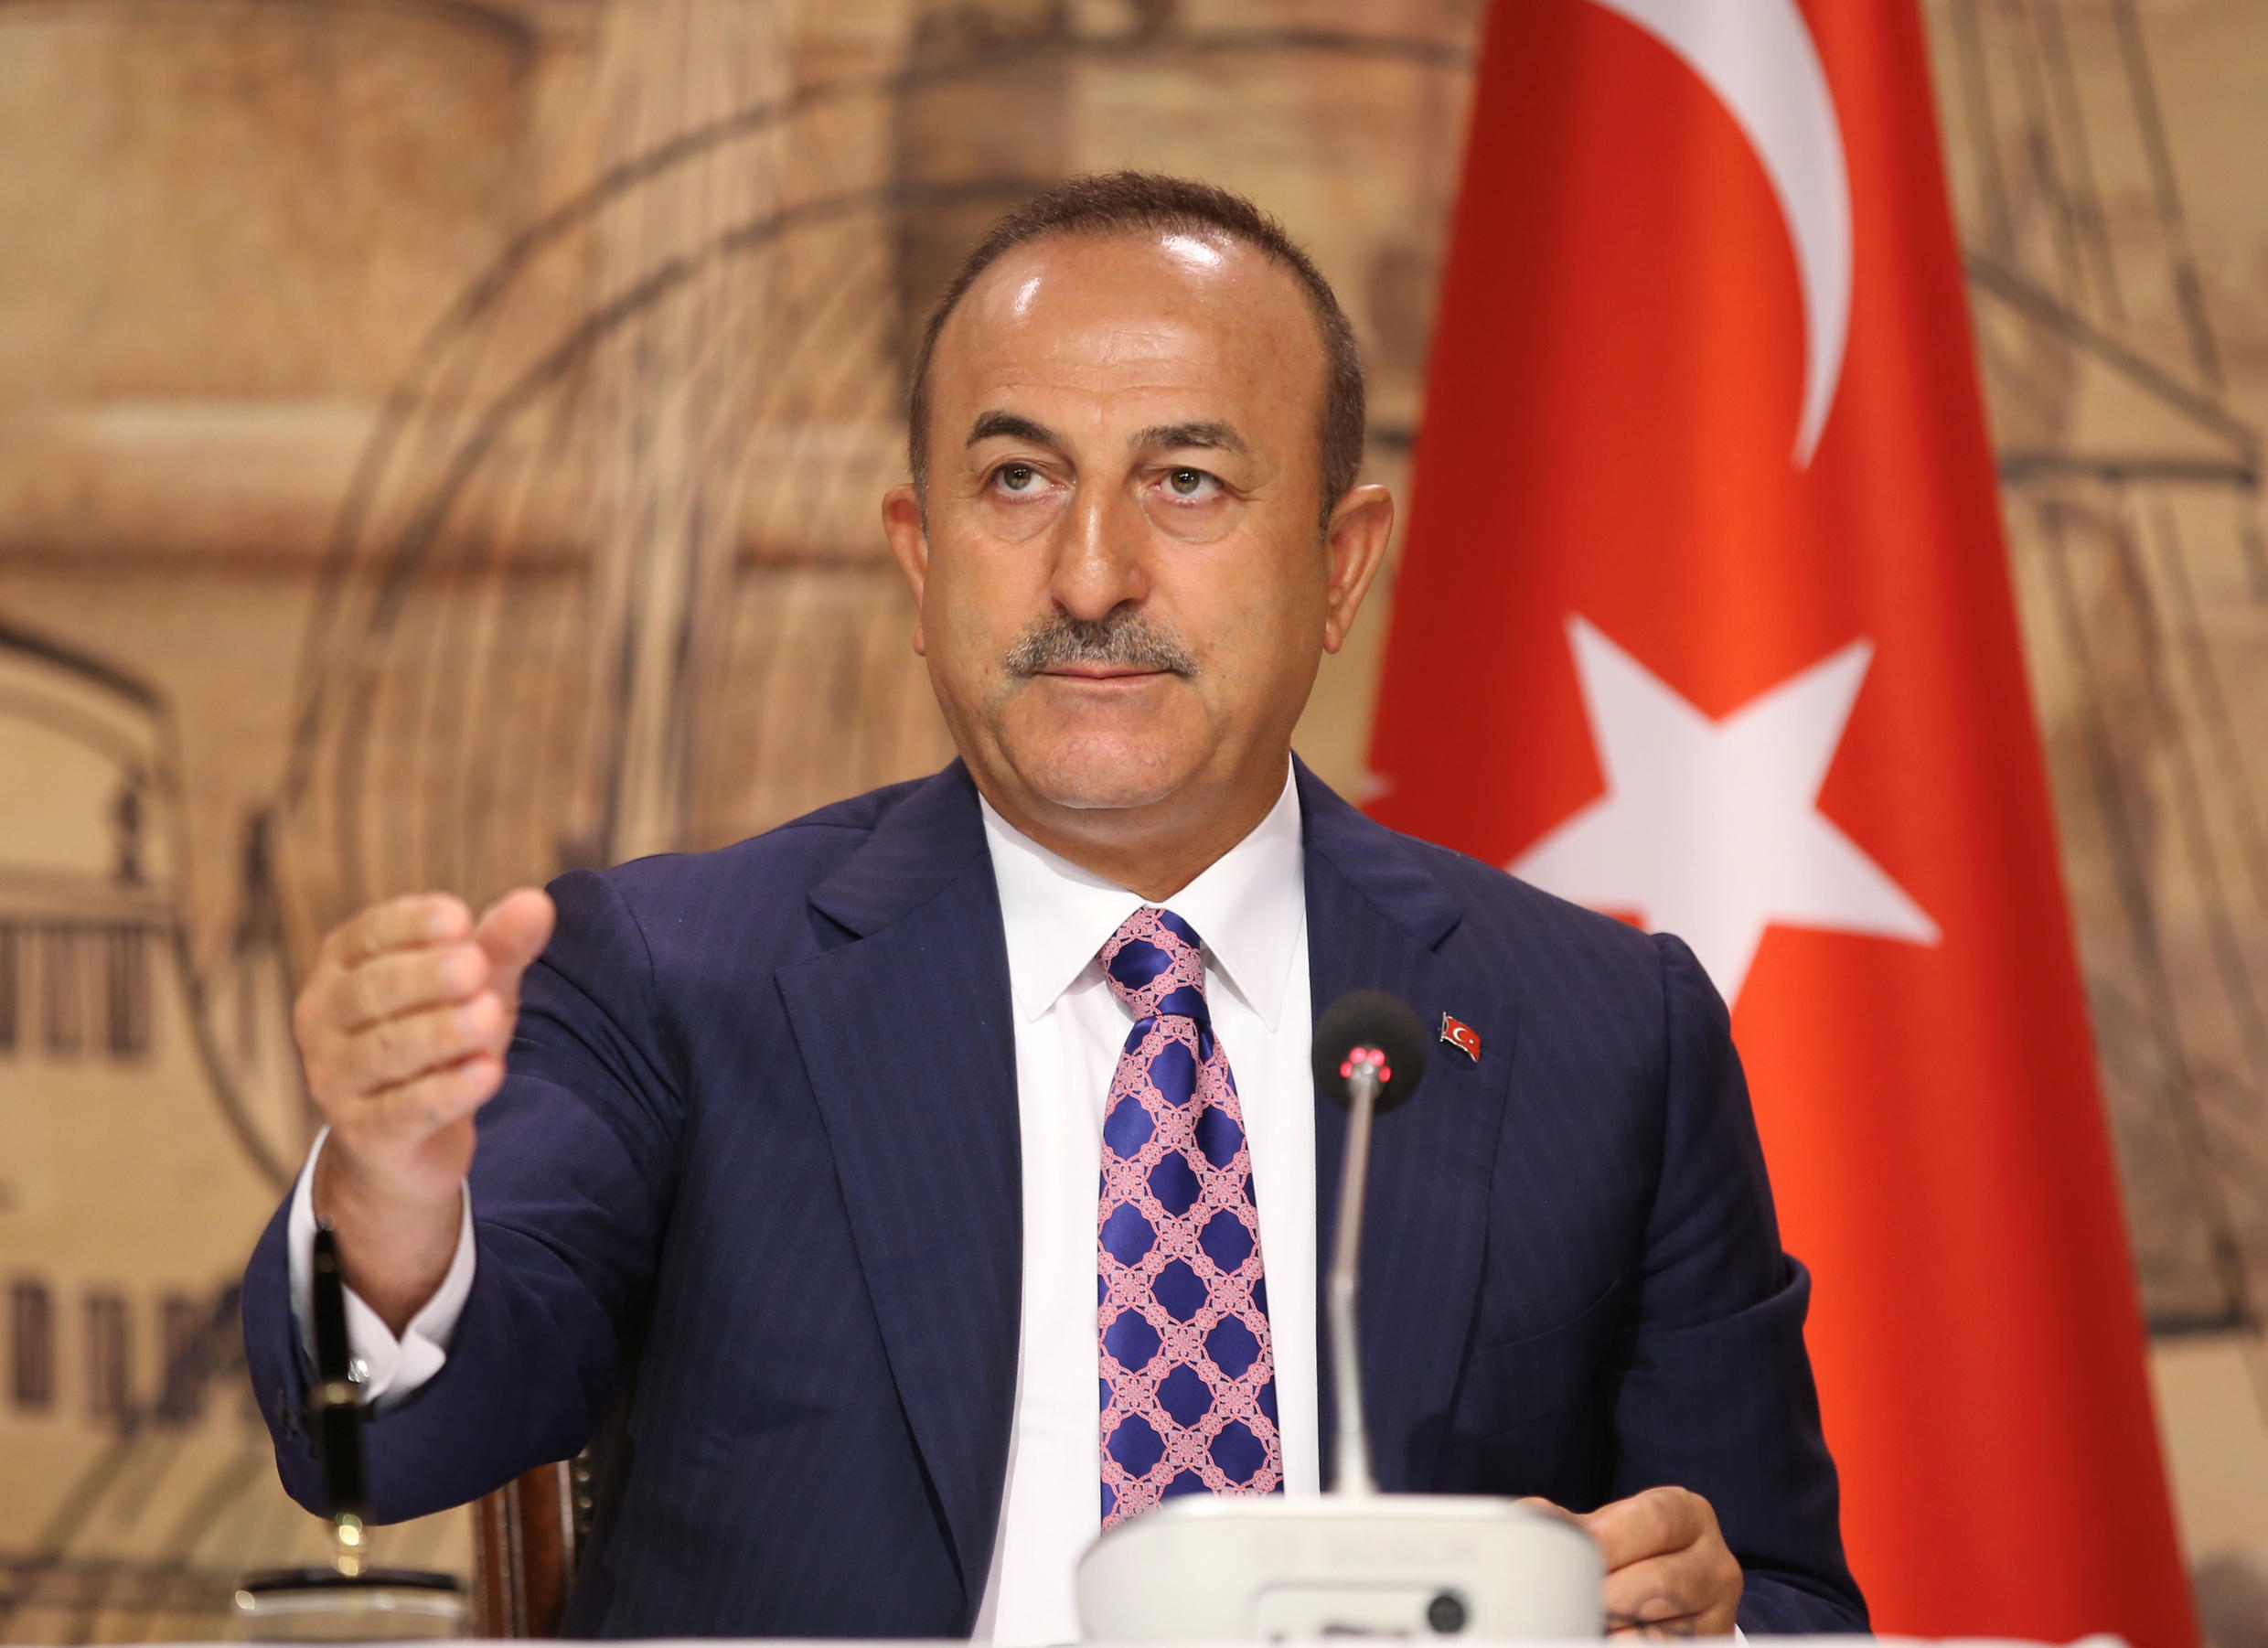 Turkish Foreign Minister Mevlut Cavusoglu during a news conference in Istanbul, Turkey, on June 15, 2020.